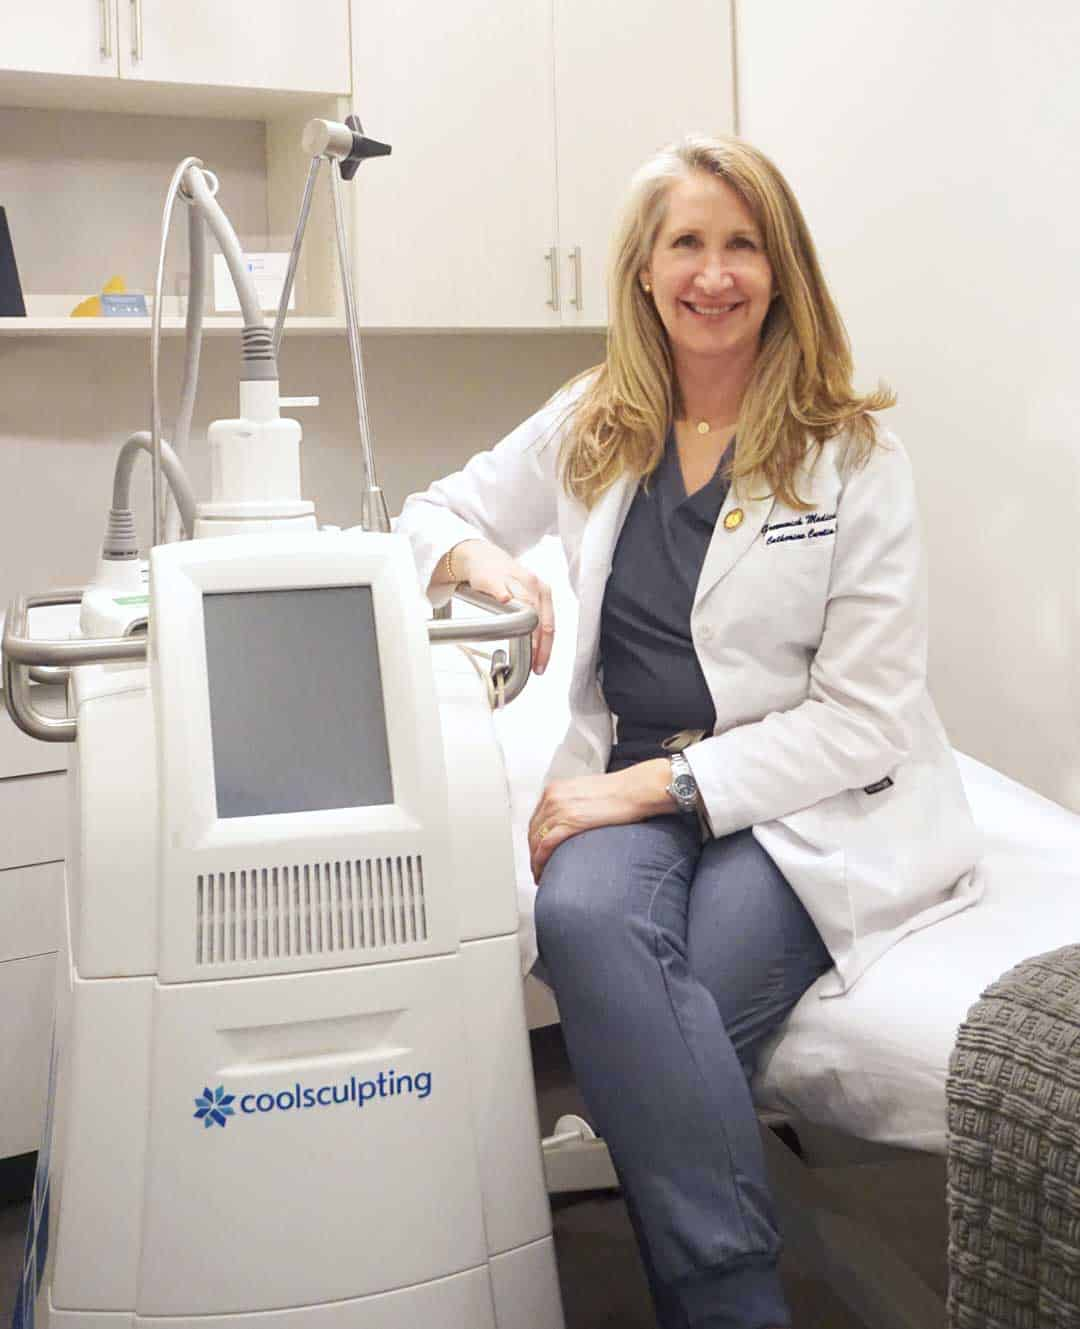 CoolSculpting Procedures in Greenwich CT